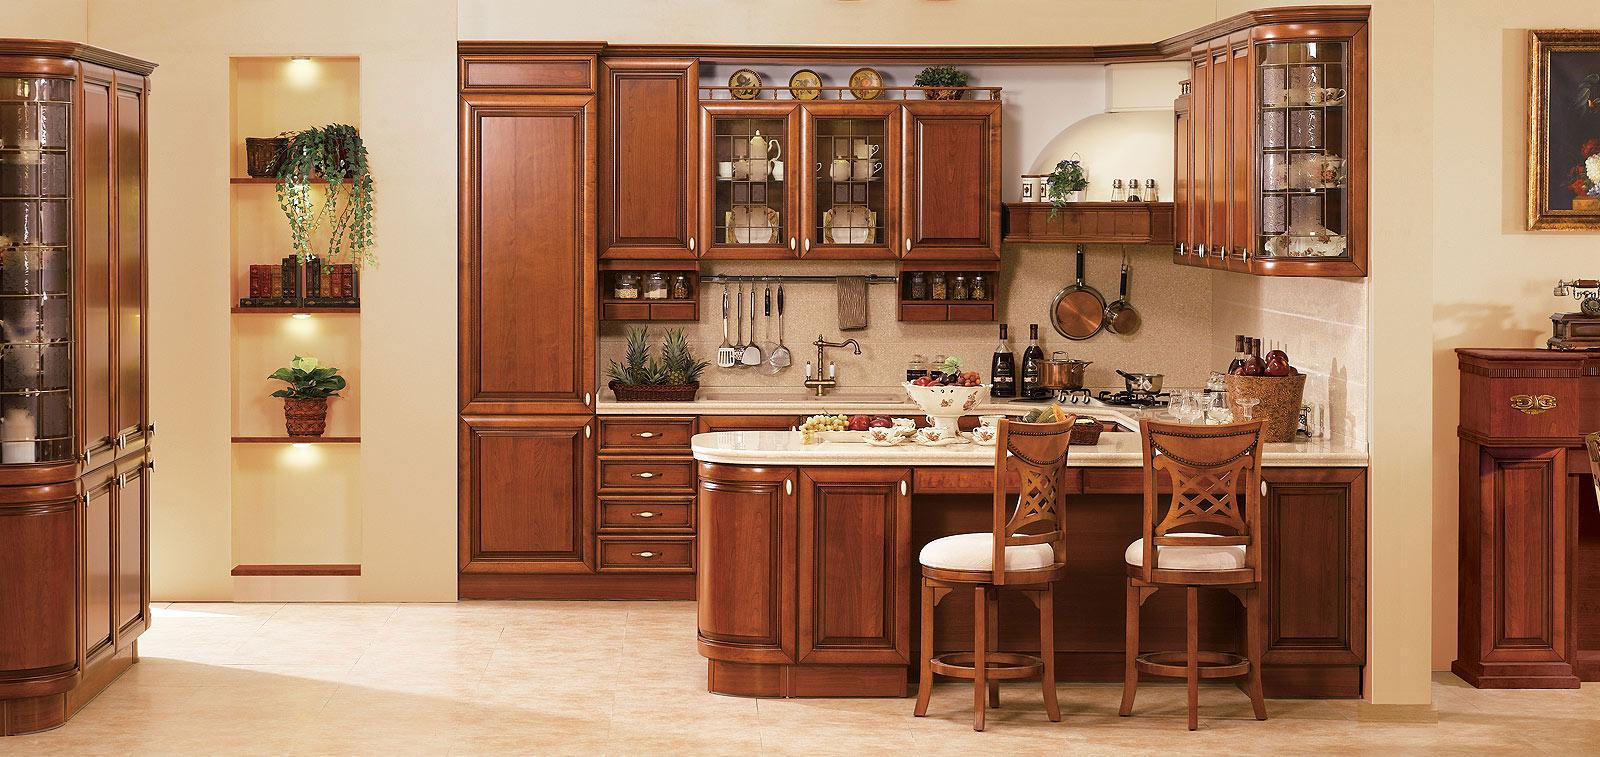 designer kitchens in india 55 modular kitchen design ideas for indian homes 784